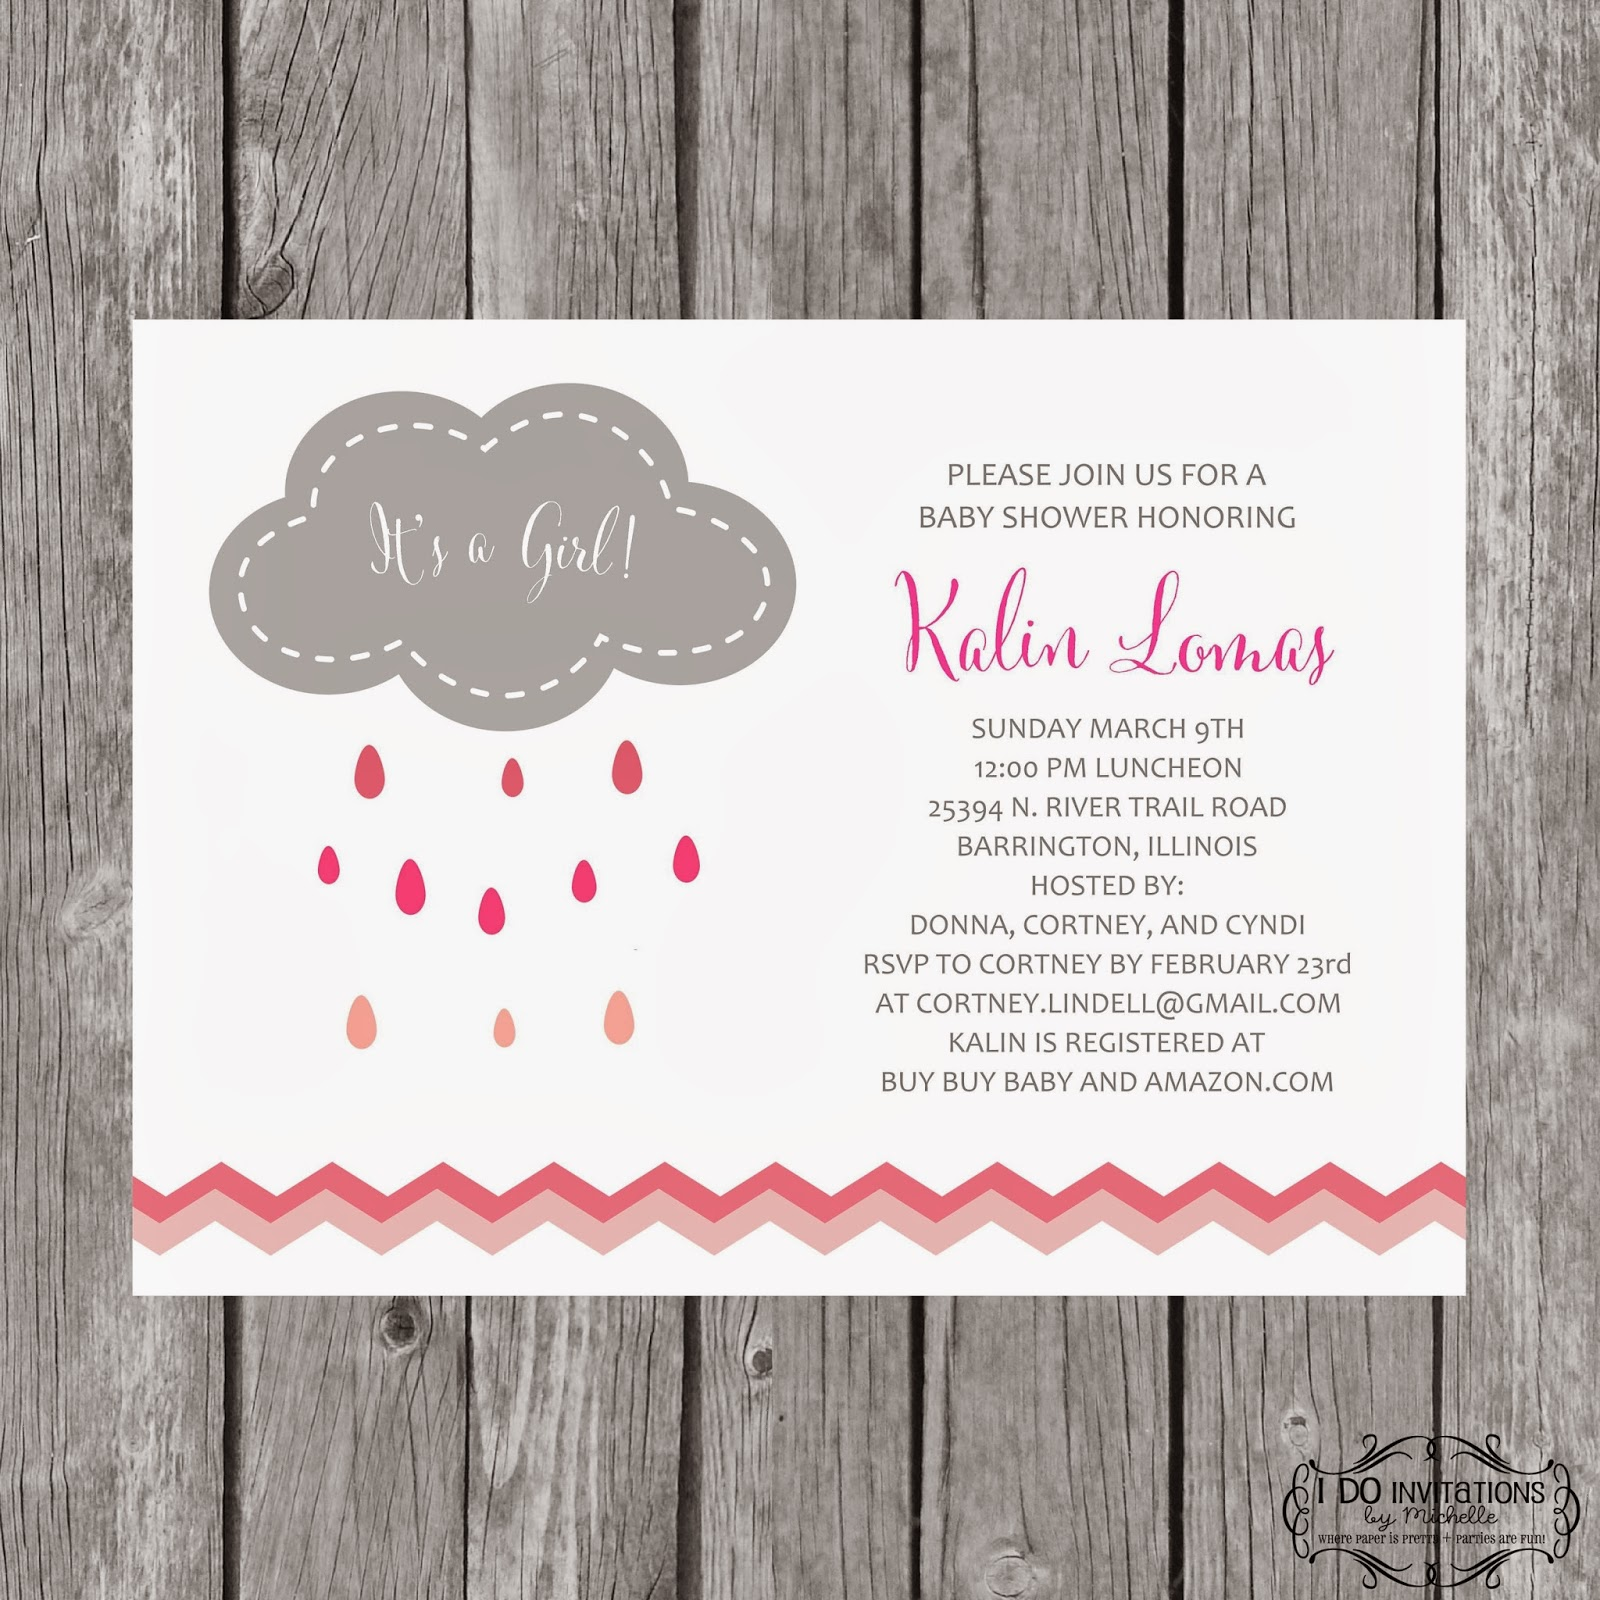 New rain cloud baby shower invitations ellery designs new rain cloud baby shower invitations filmwisefo